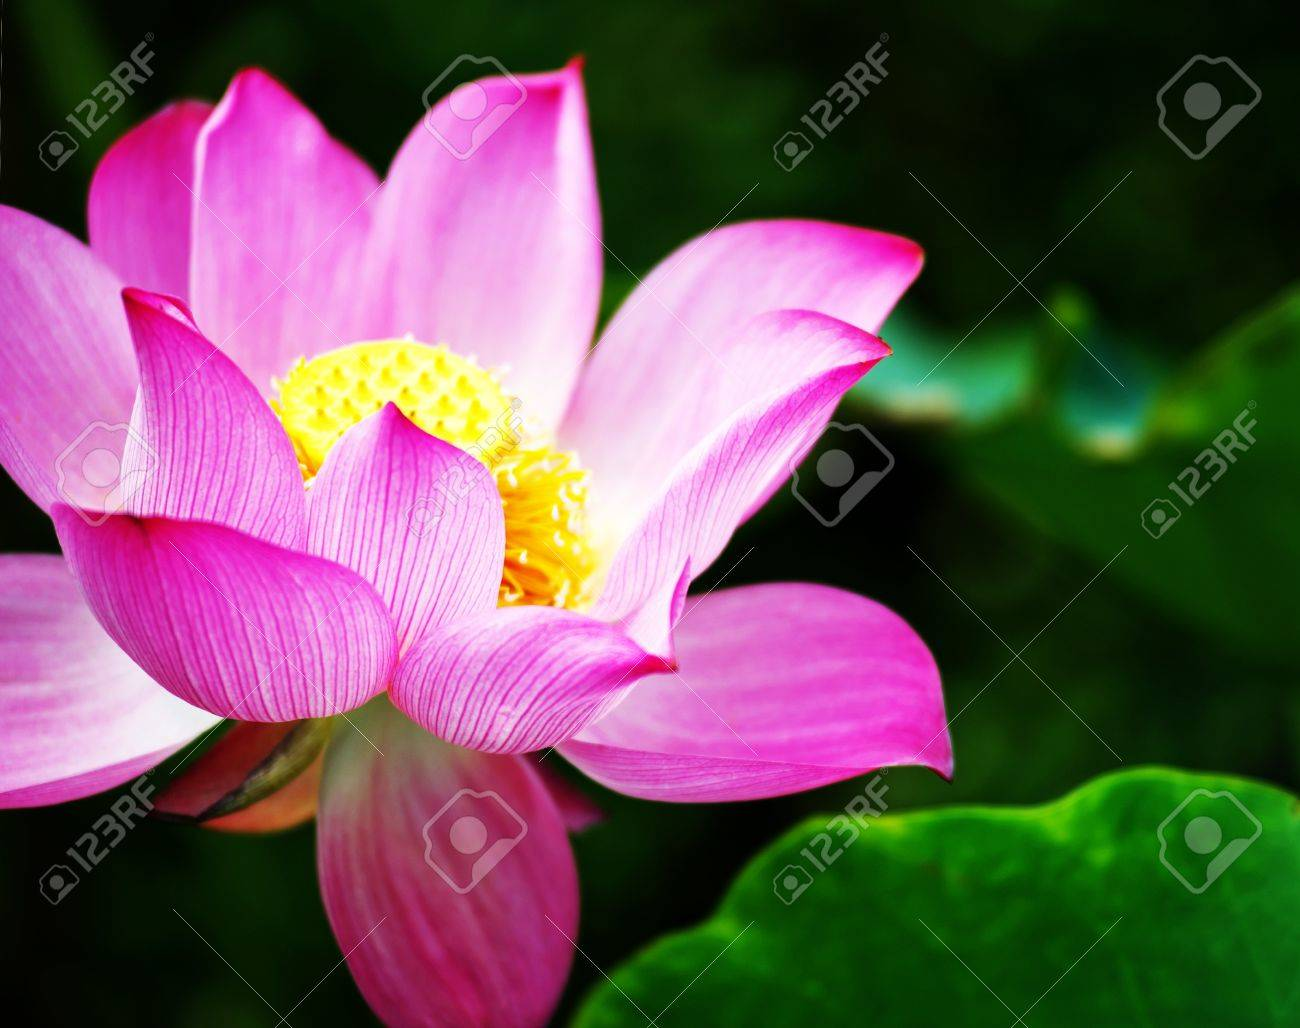 Lotus flower blossom stock photo picture and royalty free image lotus flower blossom stock photo 15731815 izmirmasajfo